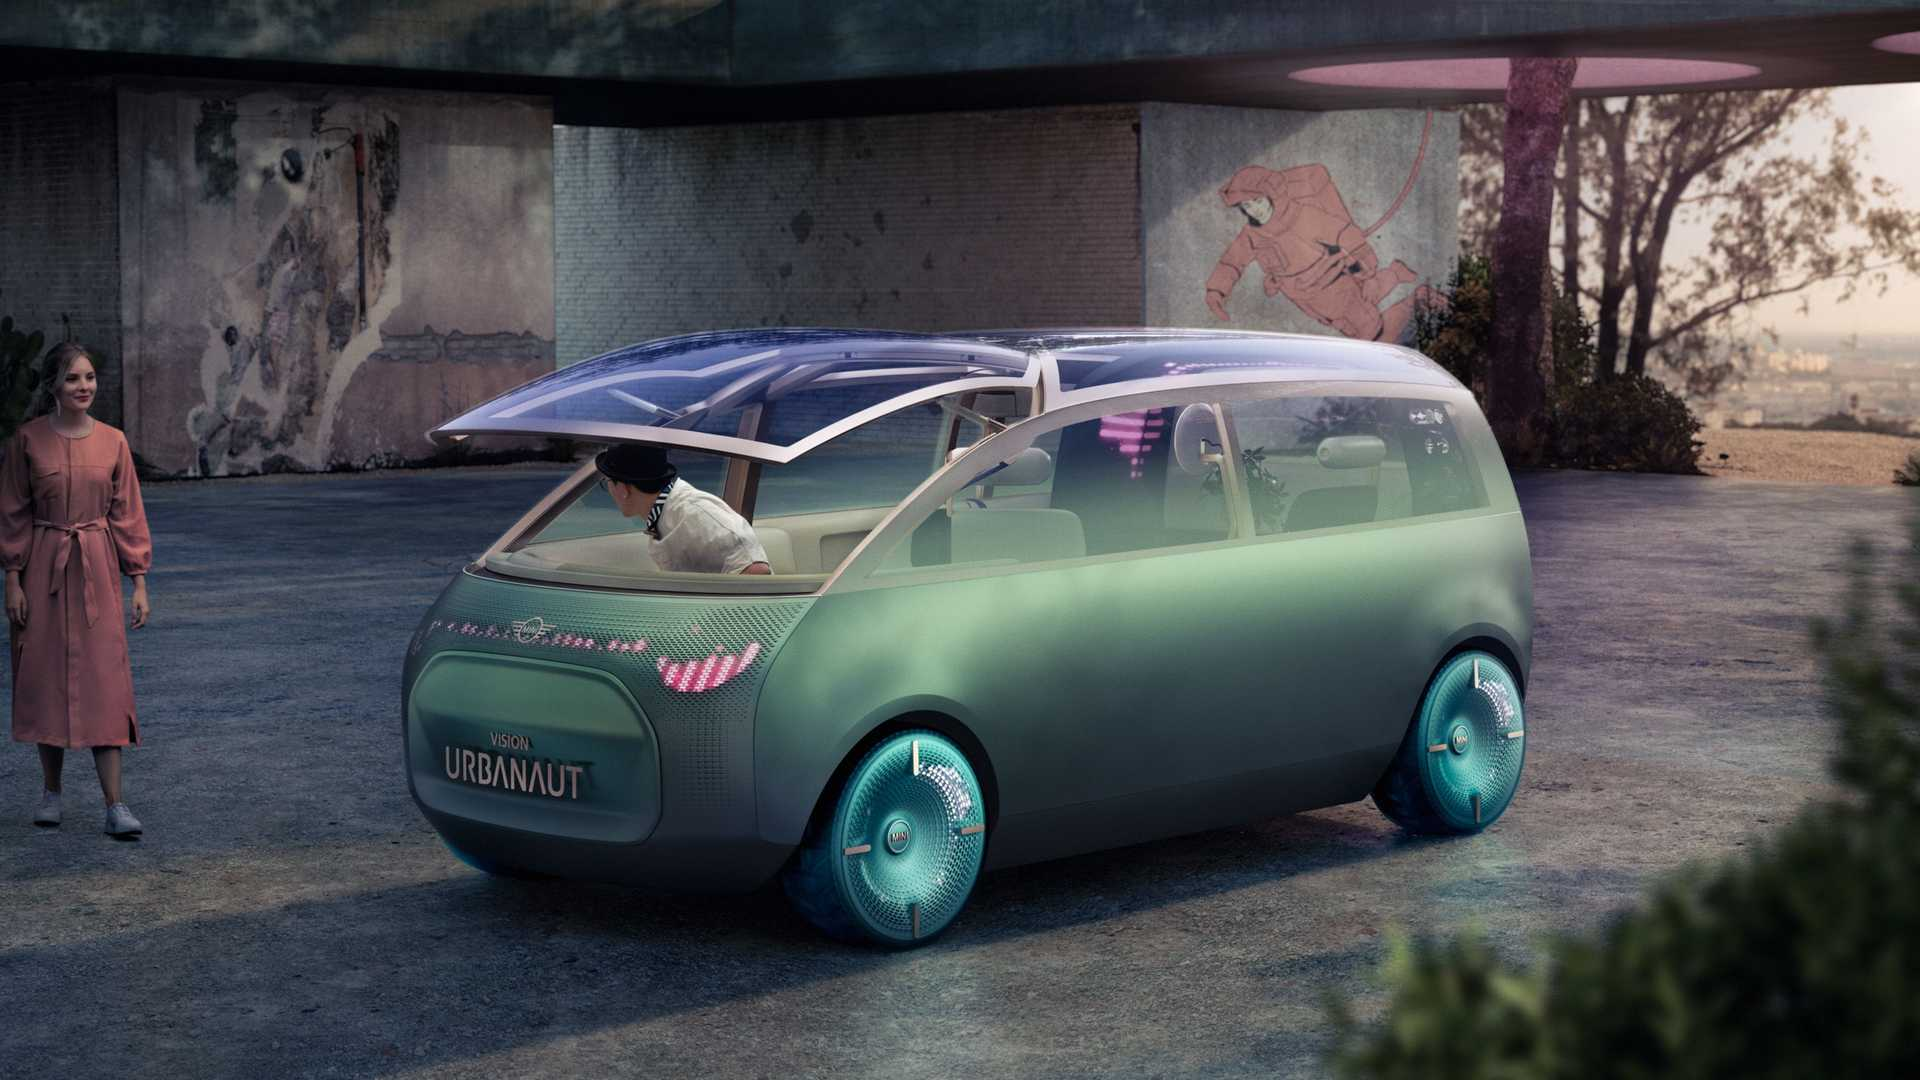 Mini gives us its take on the self-driving pod with the Vision Urbanaut concept